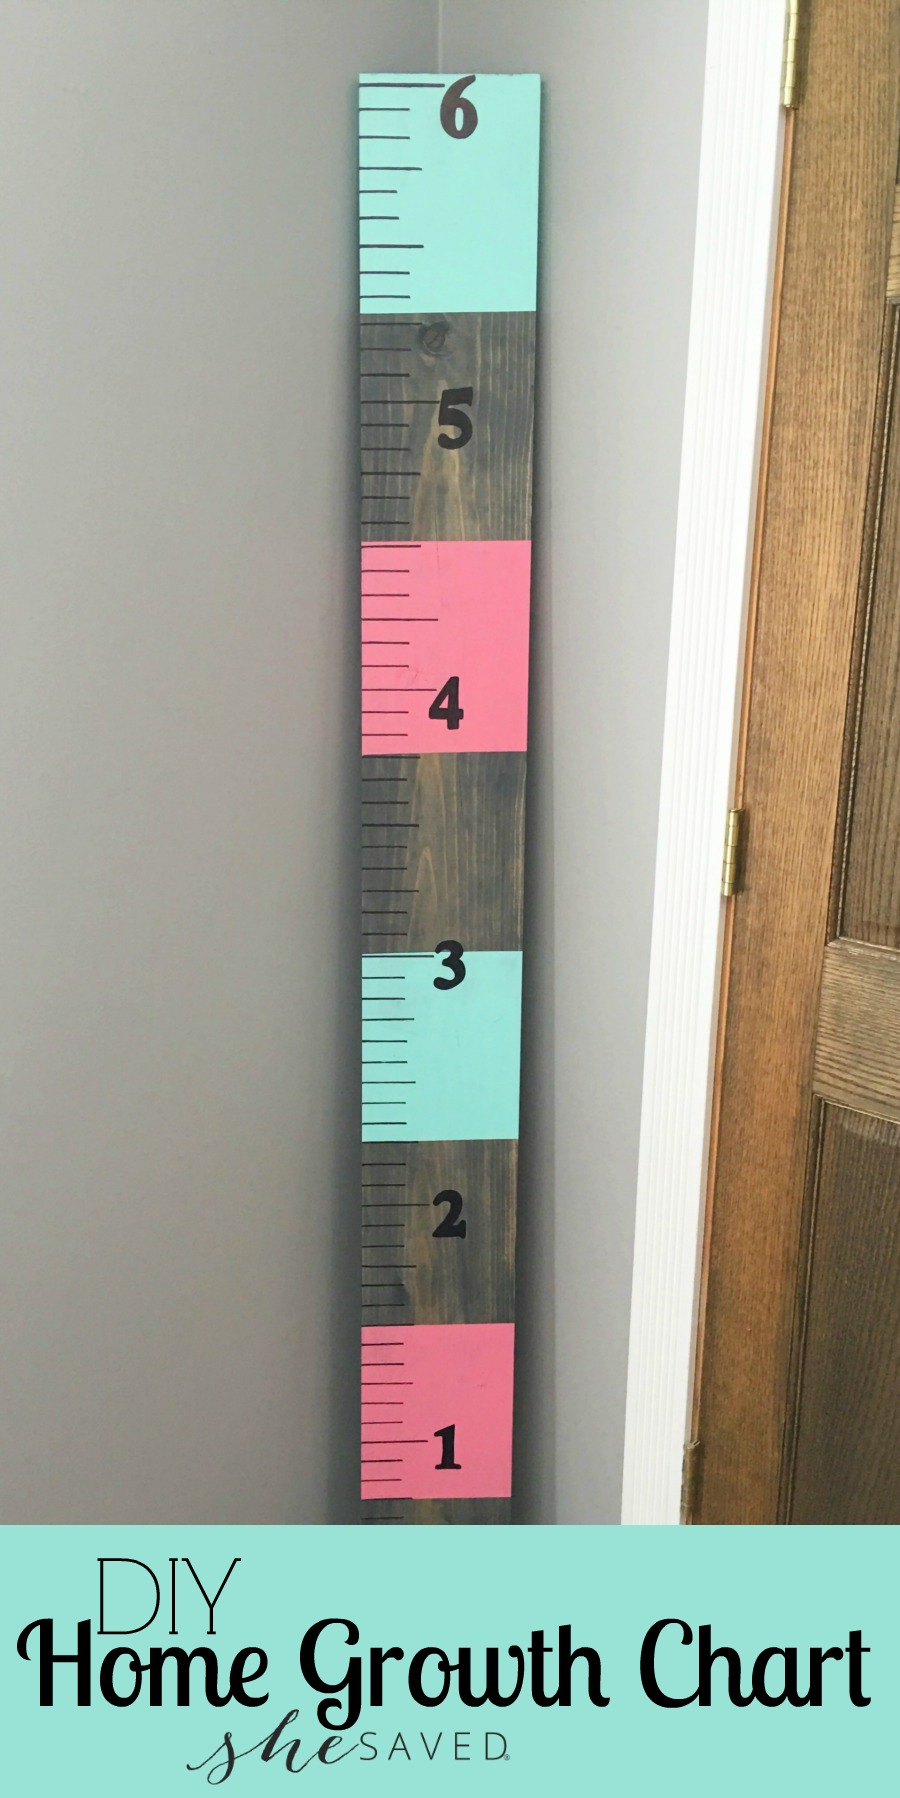 Here's a fun DIY project that you will enjoy for years to come! Make your own Home Growth Chart to track your littles as they grow and grow!